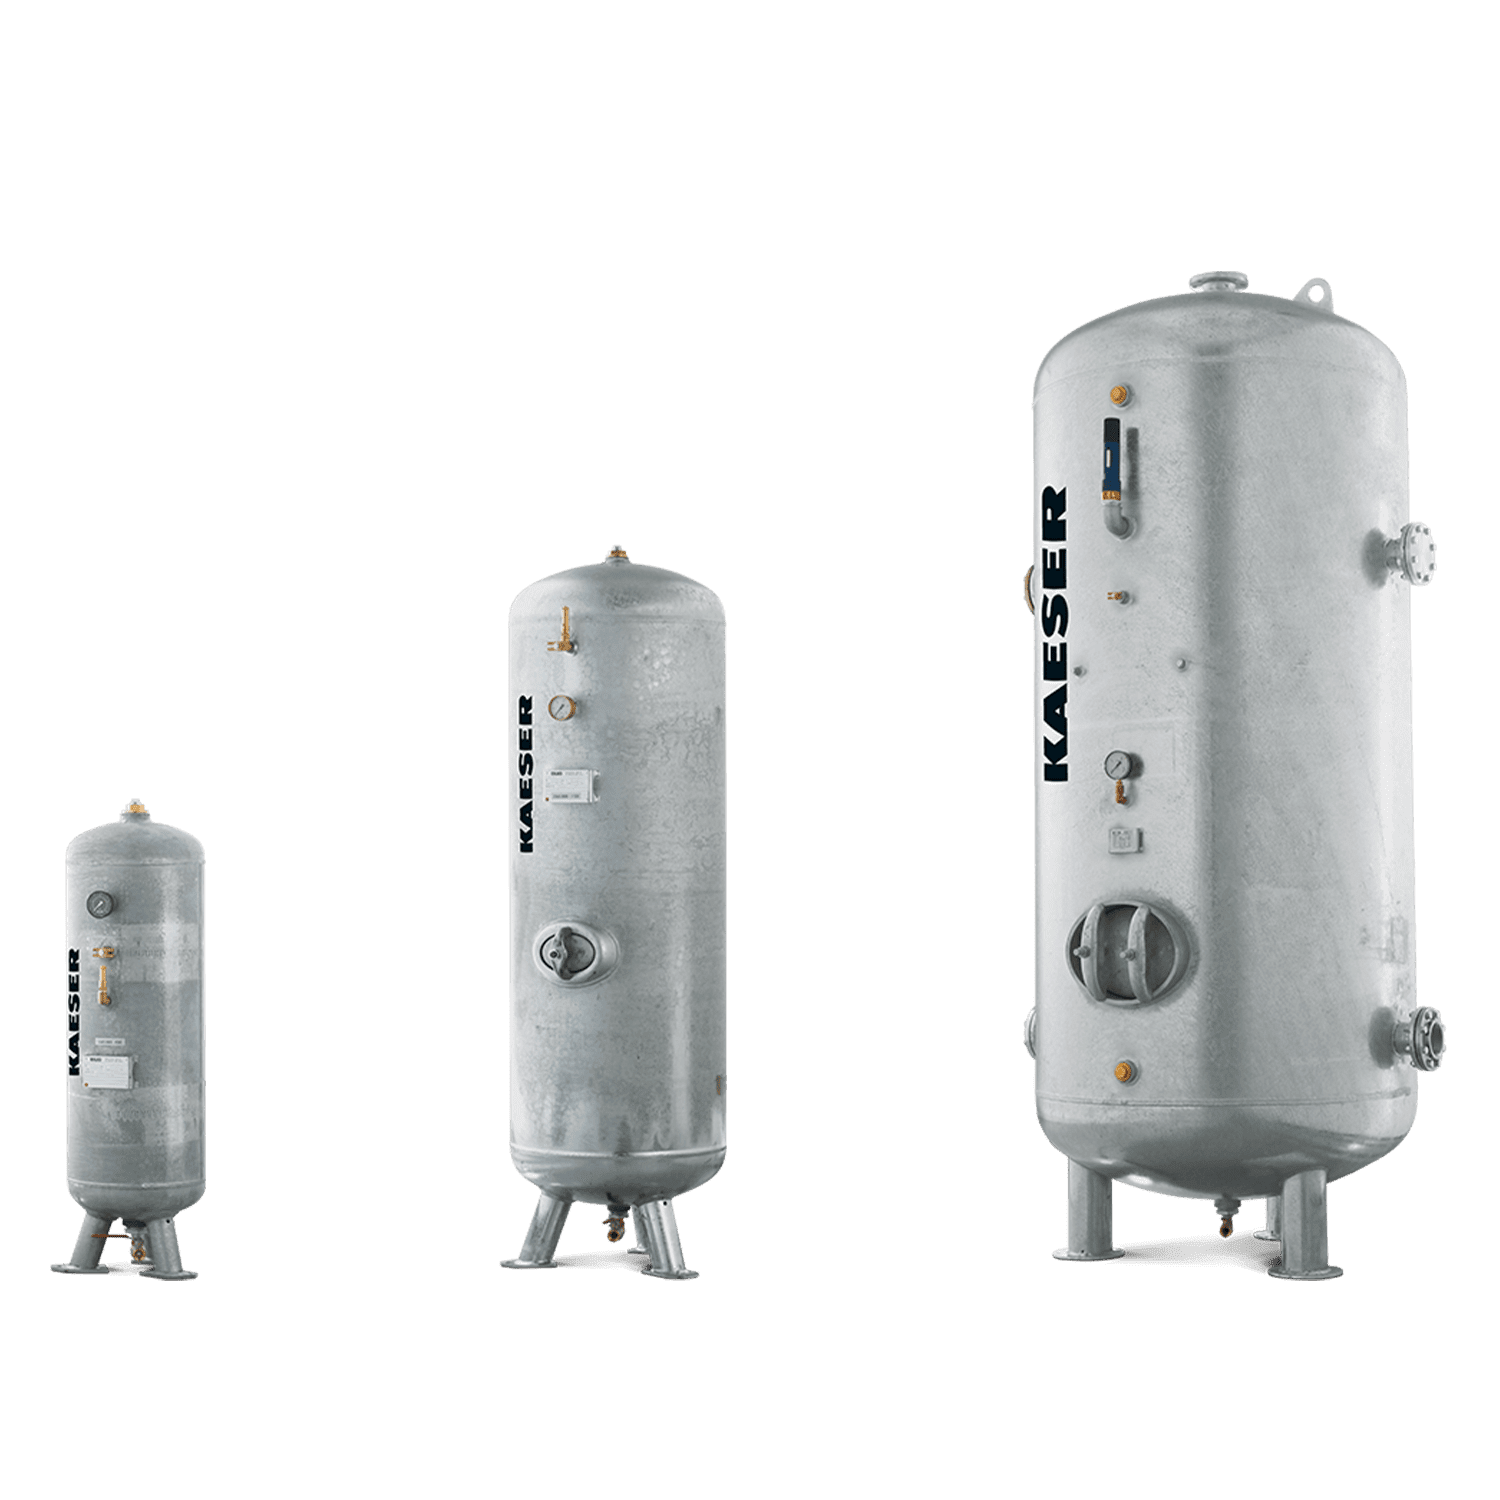 Storage and distribution of compressed air